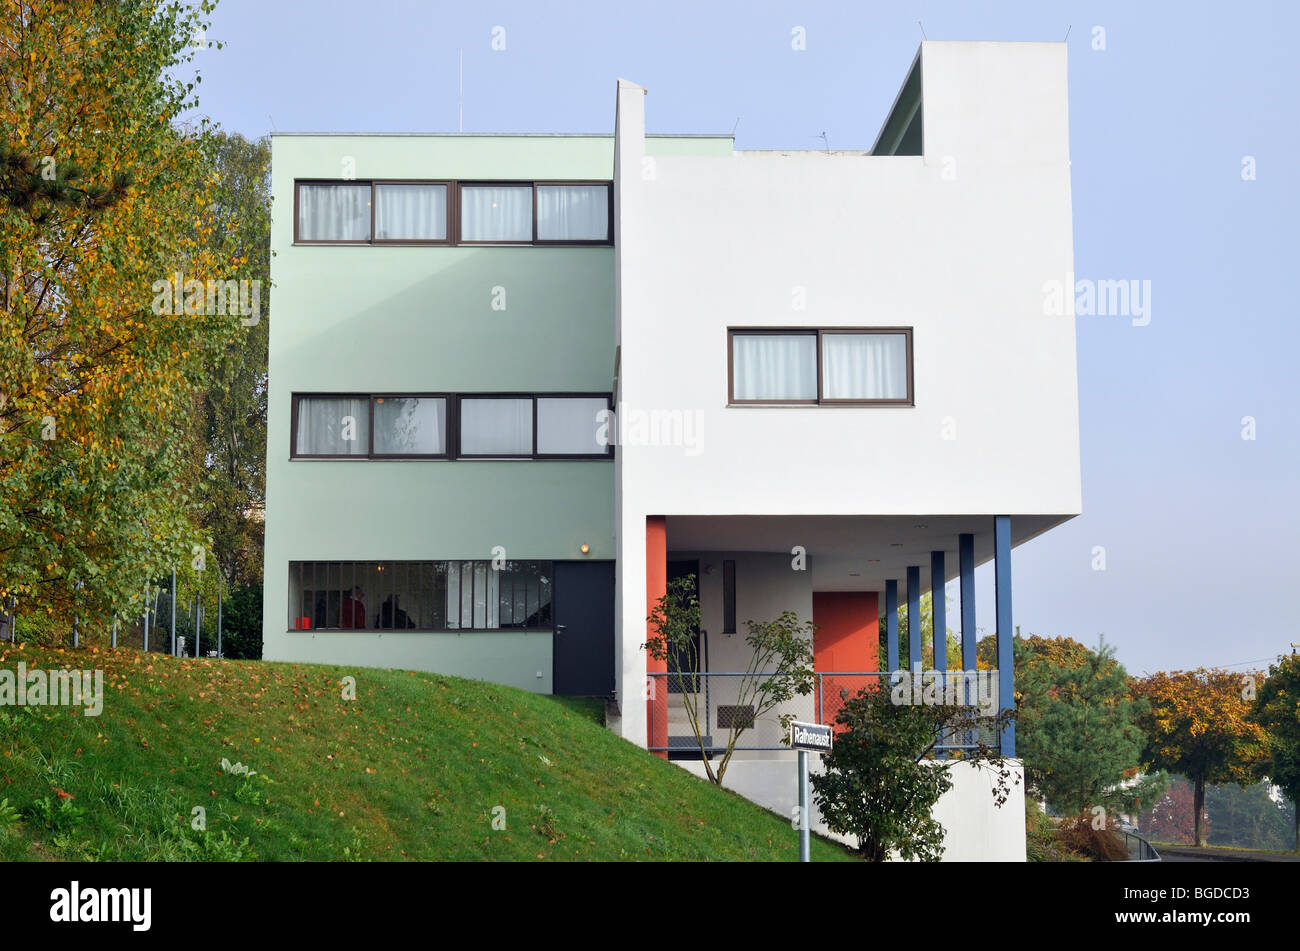 weissenhofsiedlung weissenhof settlement two family house stock photo royalty free image. Black Bedroom Furniture Sets. Home Design Ideas